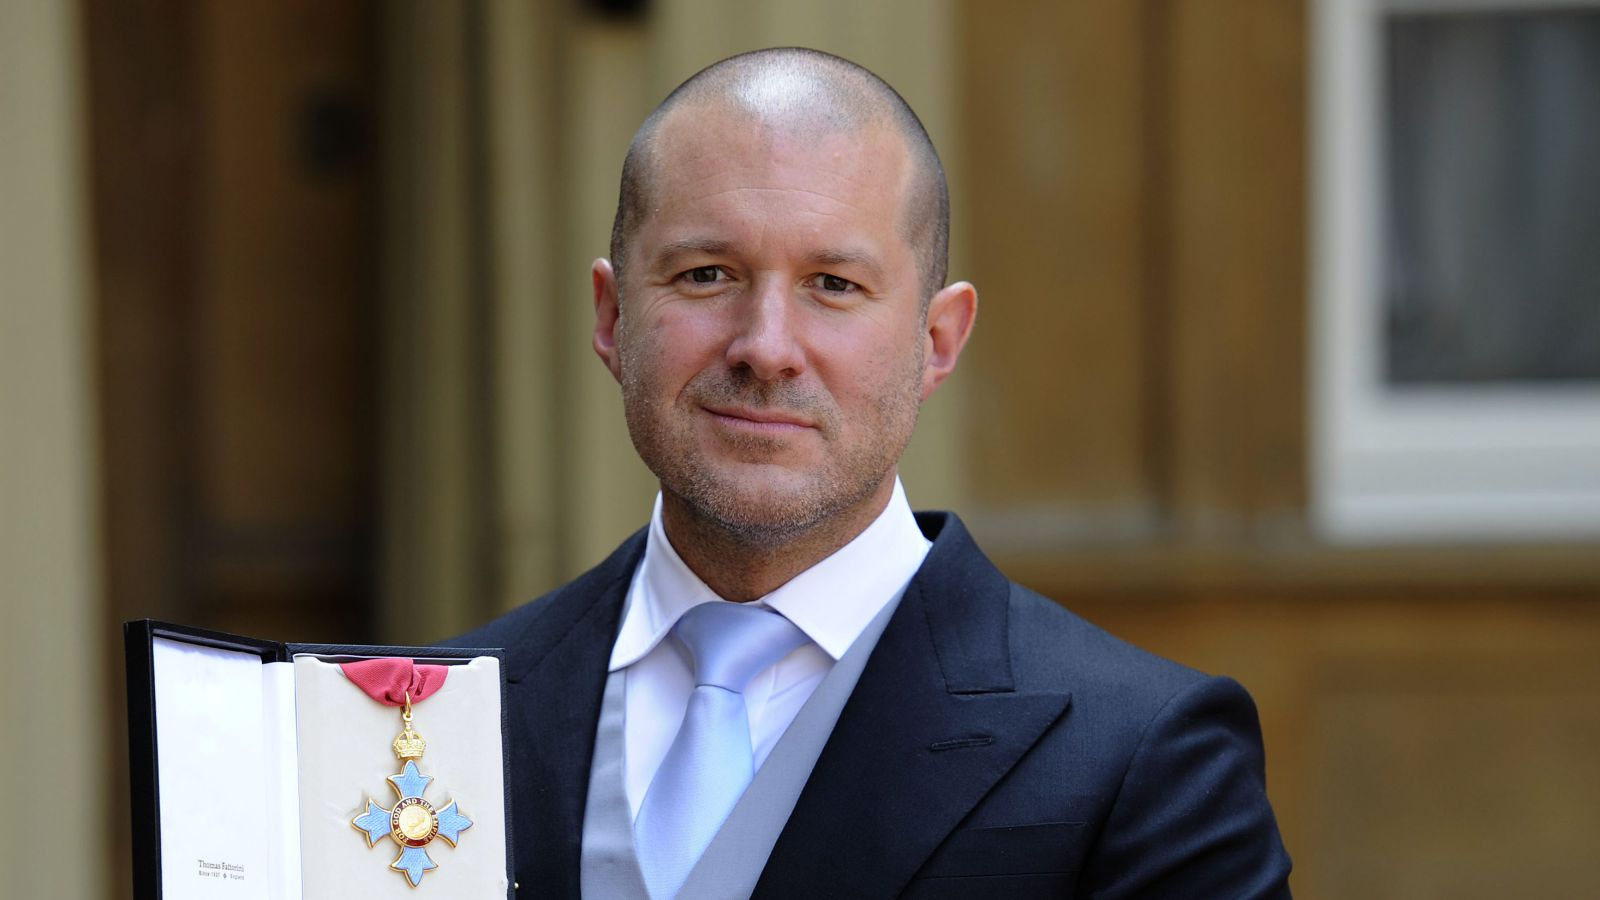 Sir Jony Ive Receives Stephen Hawking Fellowship The Mac Observer